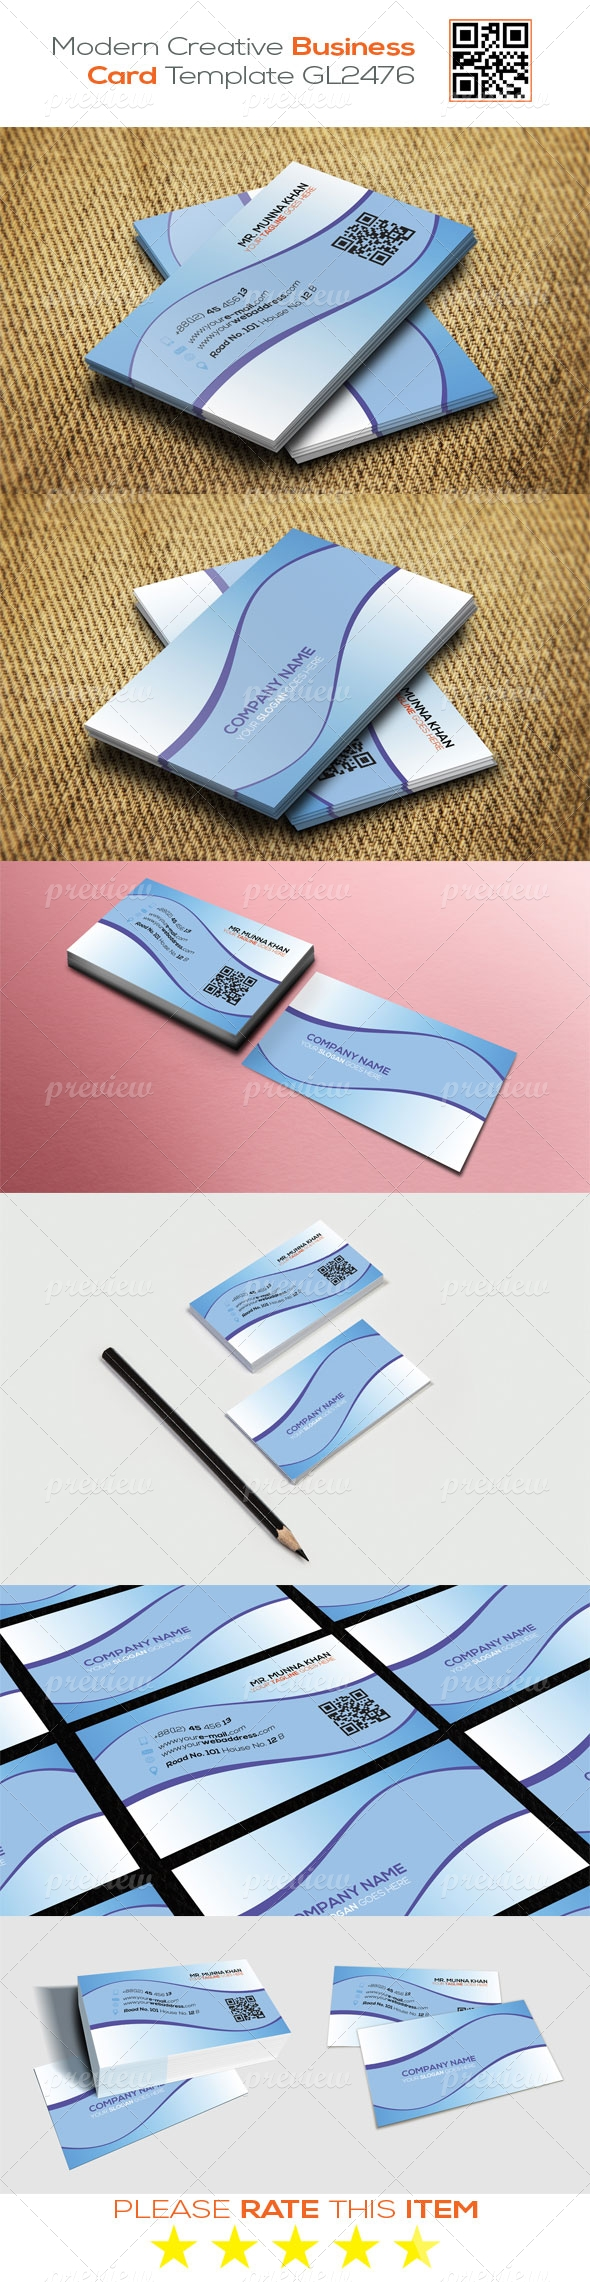 Modern Creative Business Card Template GL2476